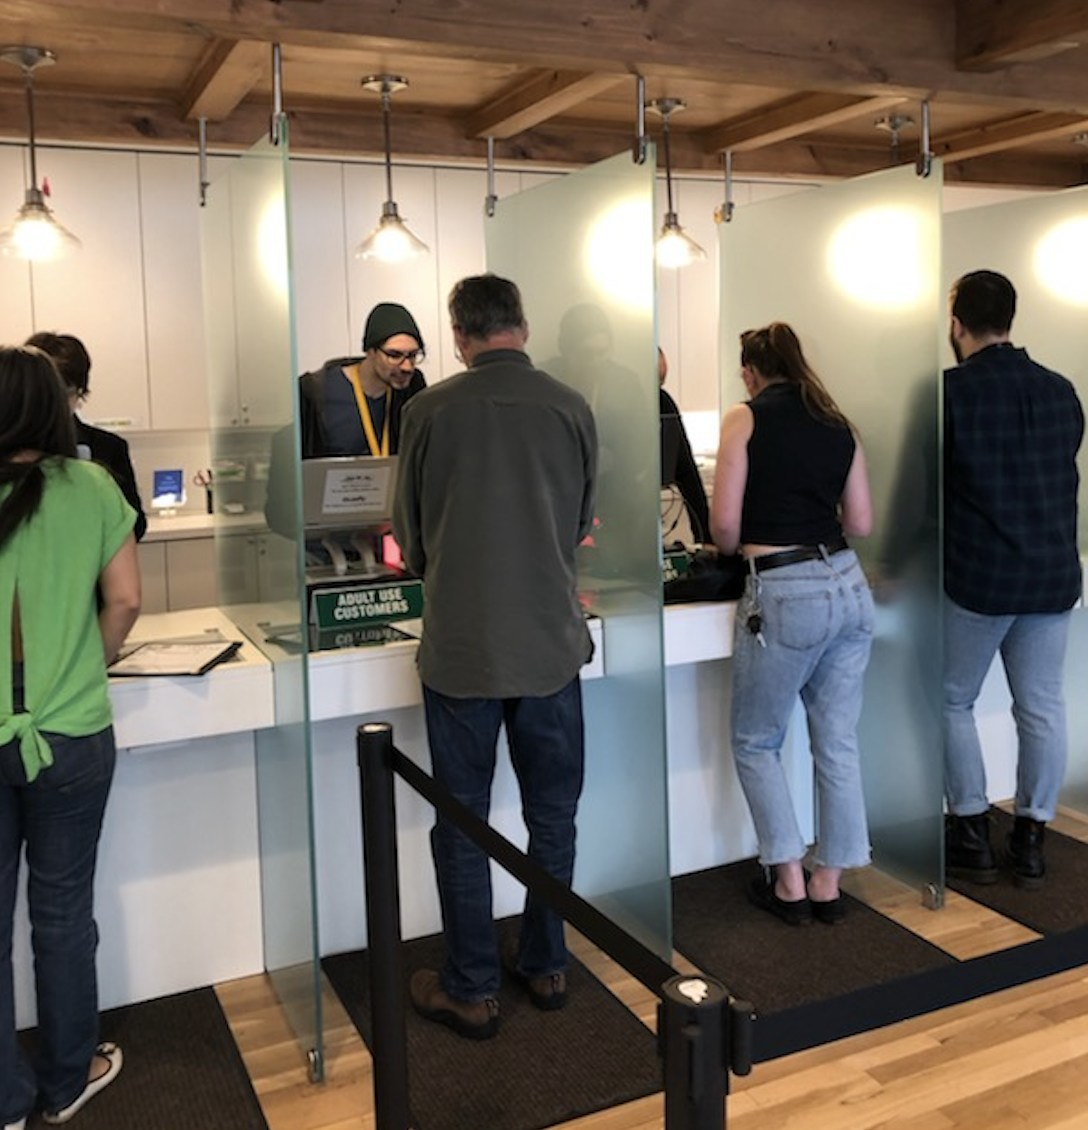 Garden Remedies Newton Opened Today For Adult Use Cannabis Sales